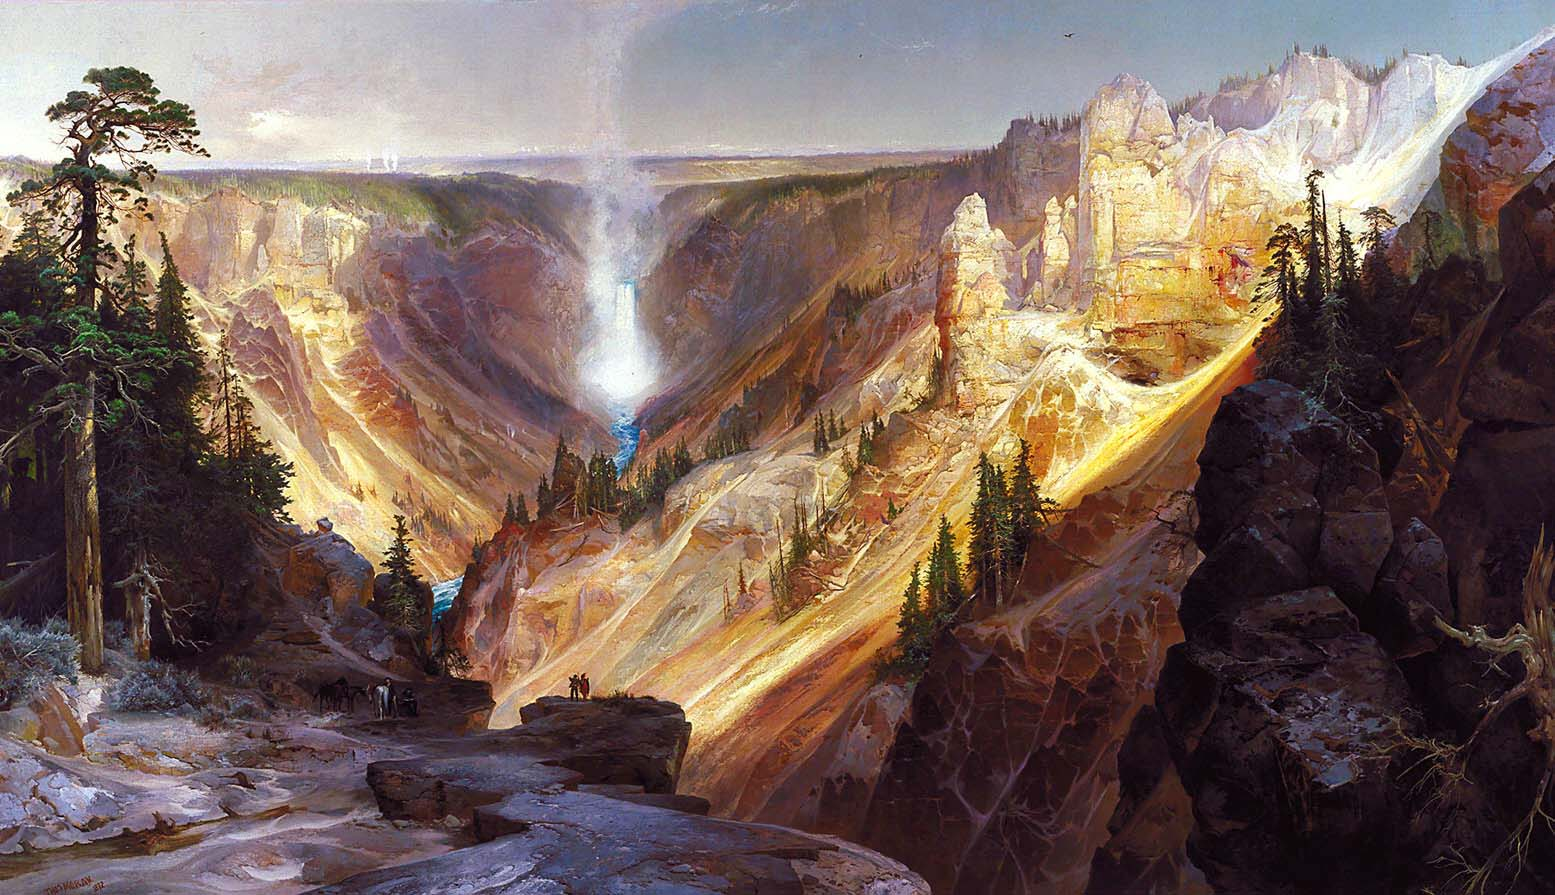 Thomas Moran, El gran cañón de Yellowstone, 1872. Smithsonian American Art Museum, Washington, DC